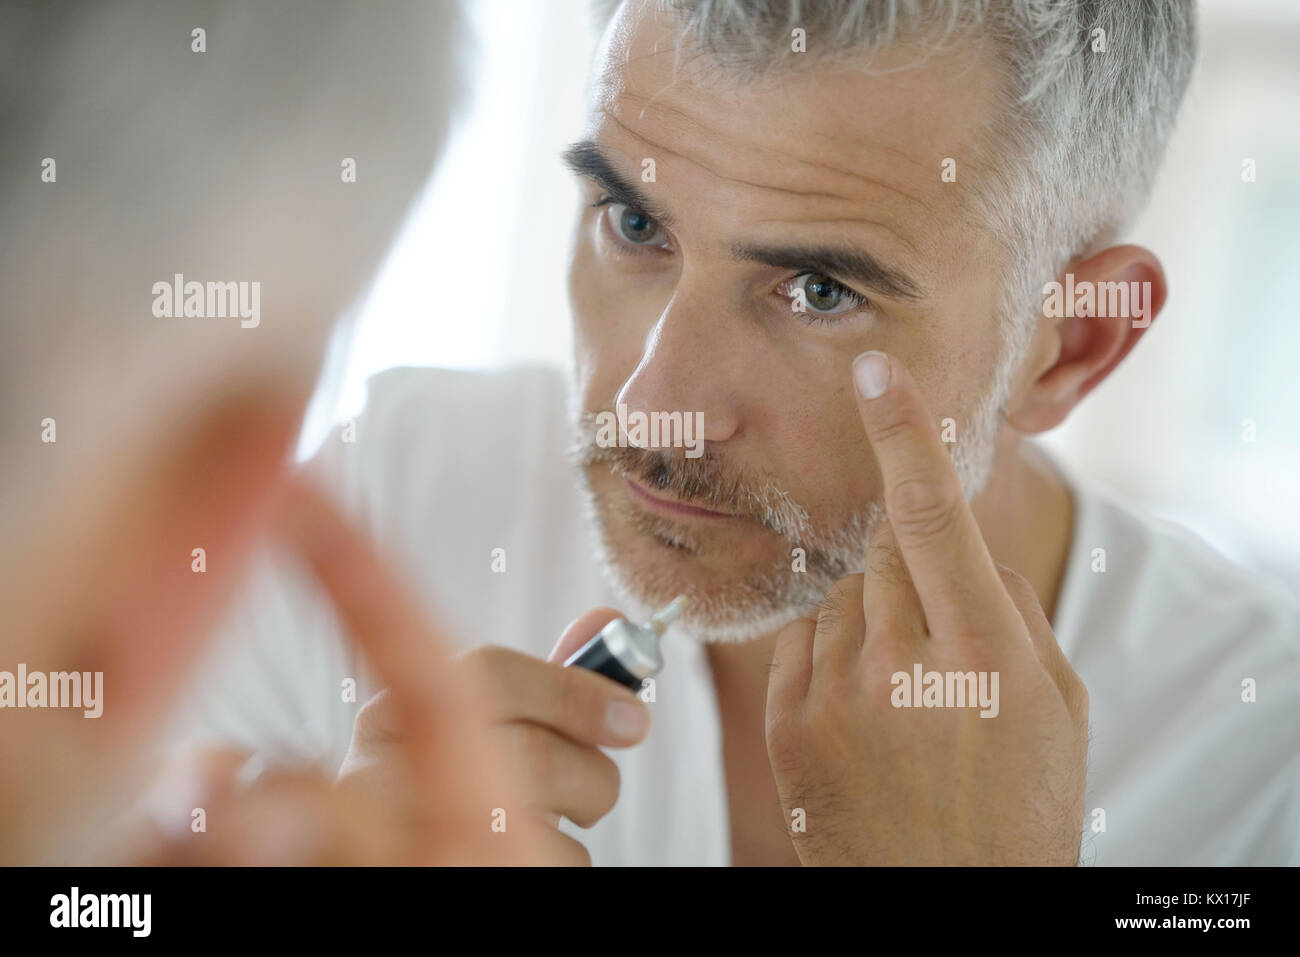 Portrait of middle-aged man applying eye concealer - Stock Image